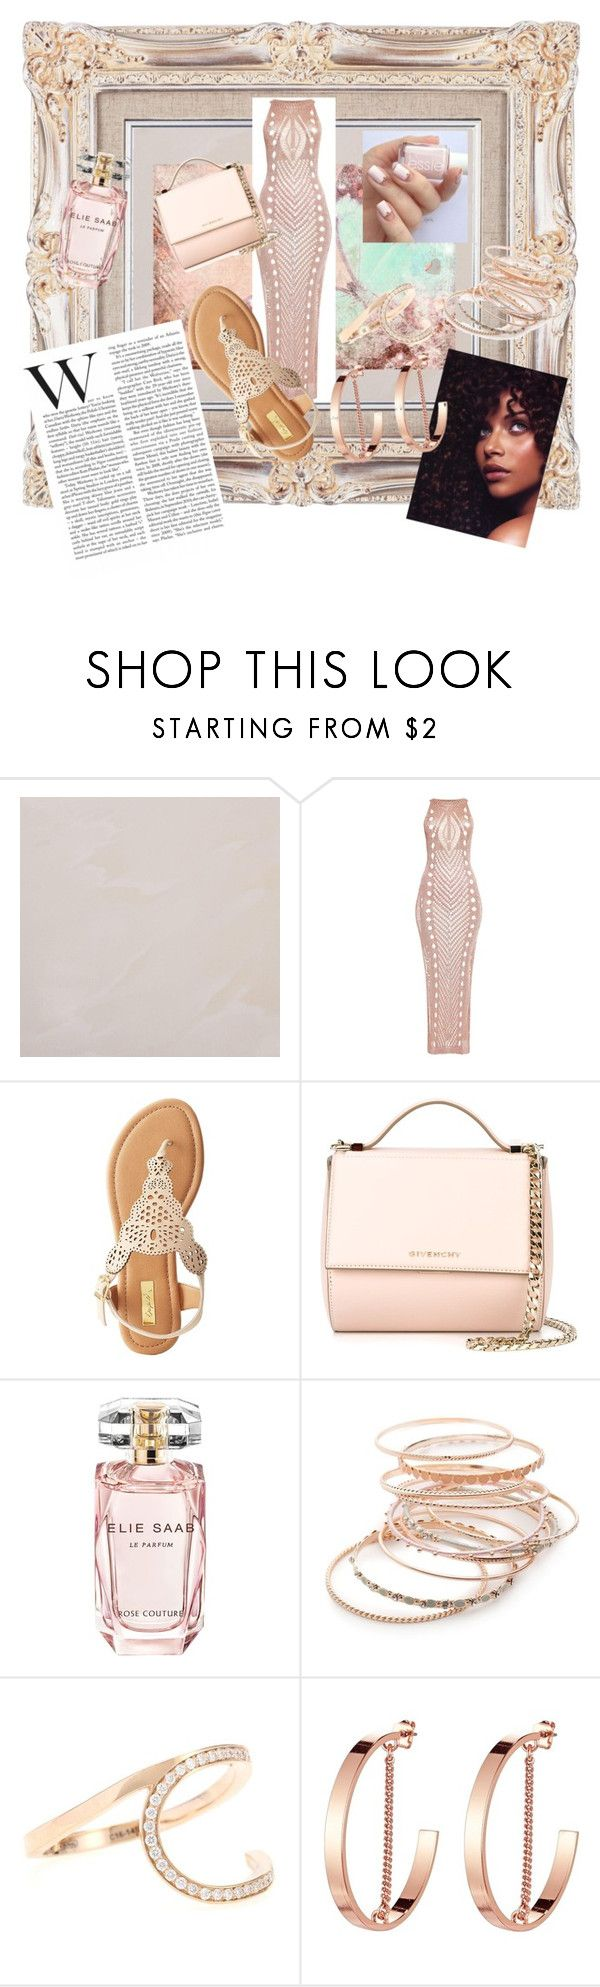 """""""Maxi Dress"""" by girlie87 ❤ liked on Polyvore featuring Qupid, Givenchy, Elie Saab, Red Camel, Repossi and Jenny Bird"""